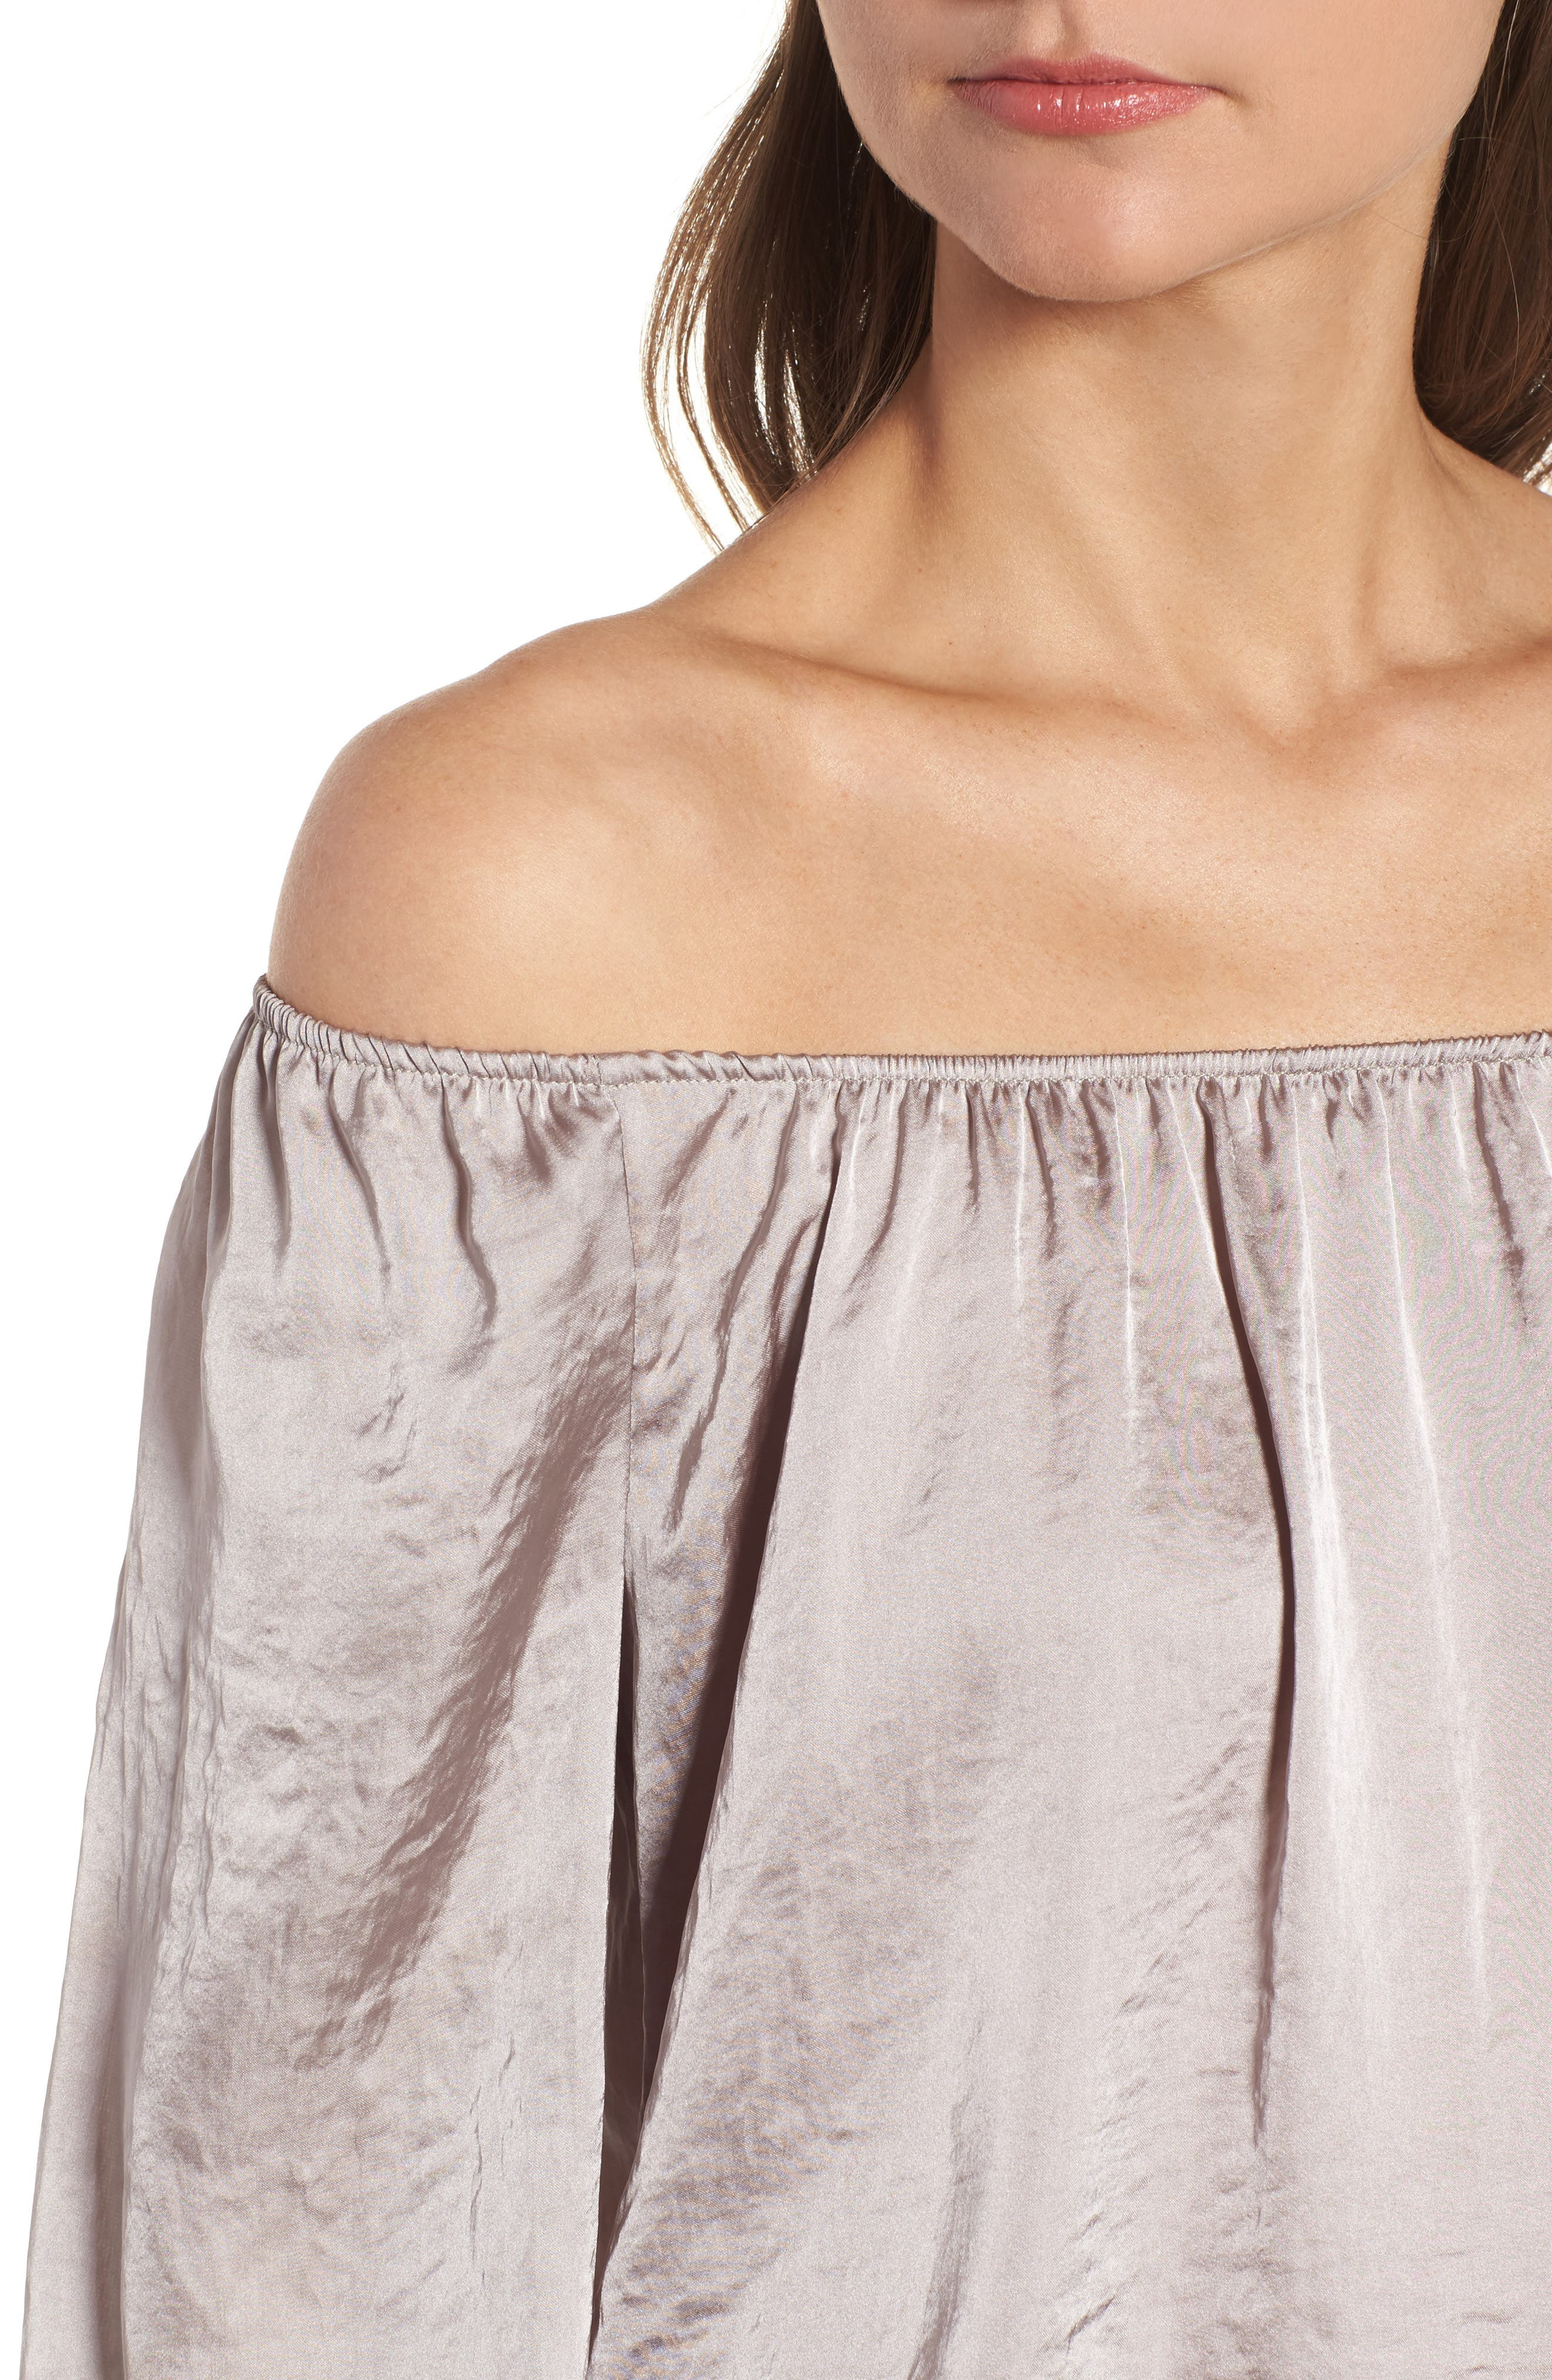 Working Title Satin Top,                             Alternate thumbnail 4, color,                             Taupe